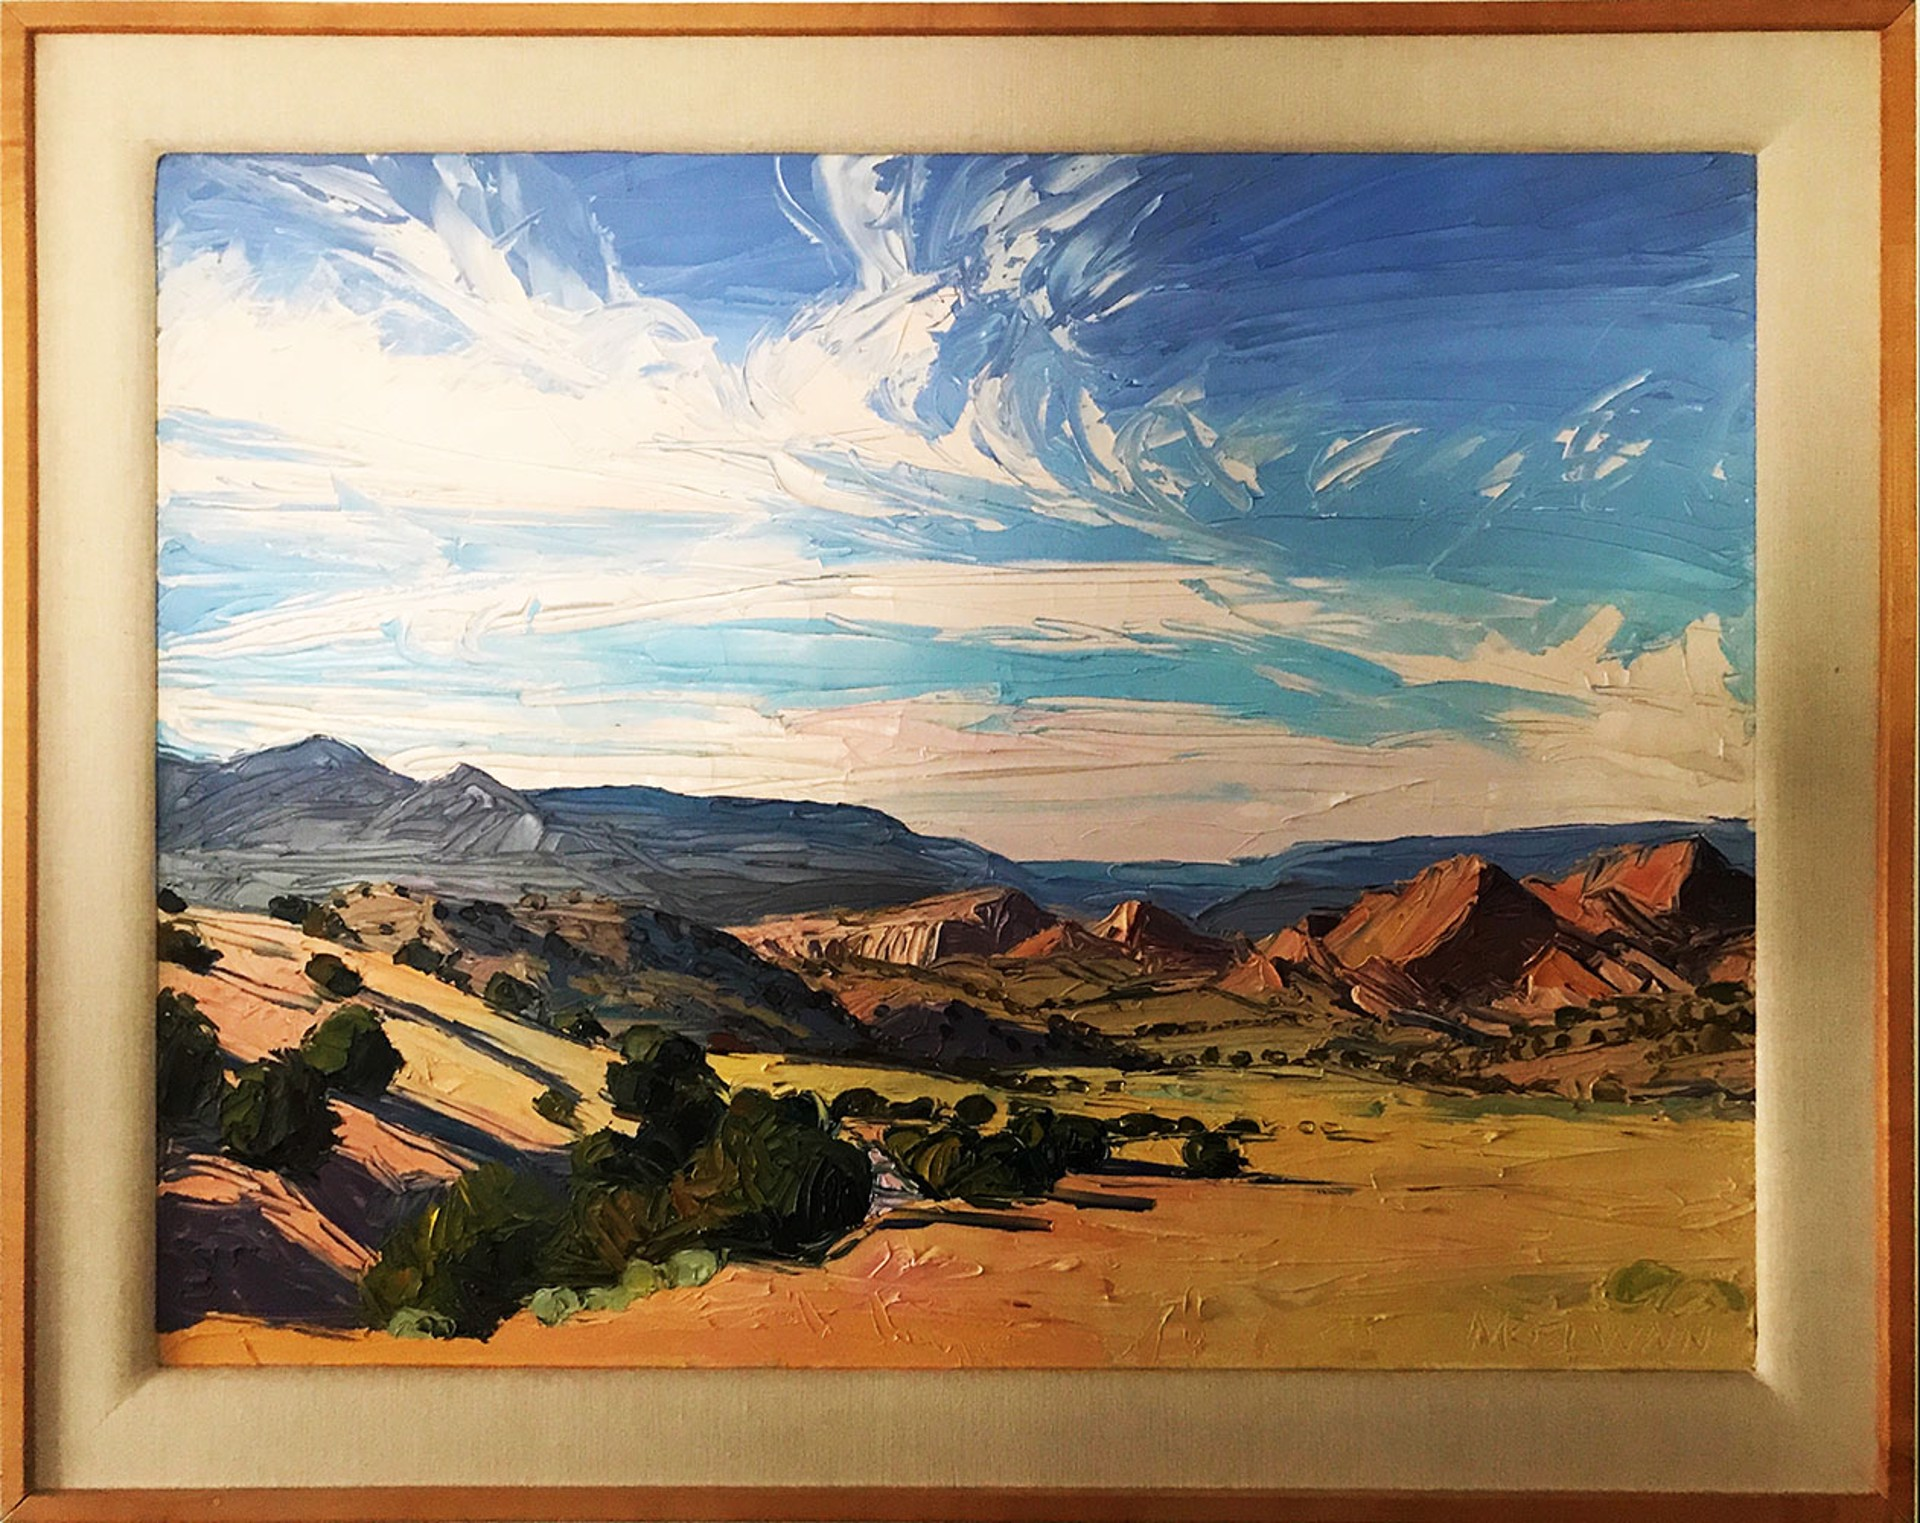 Chimayo Badlands with Pink Clouds by Louisa McElwain